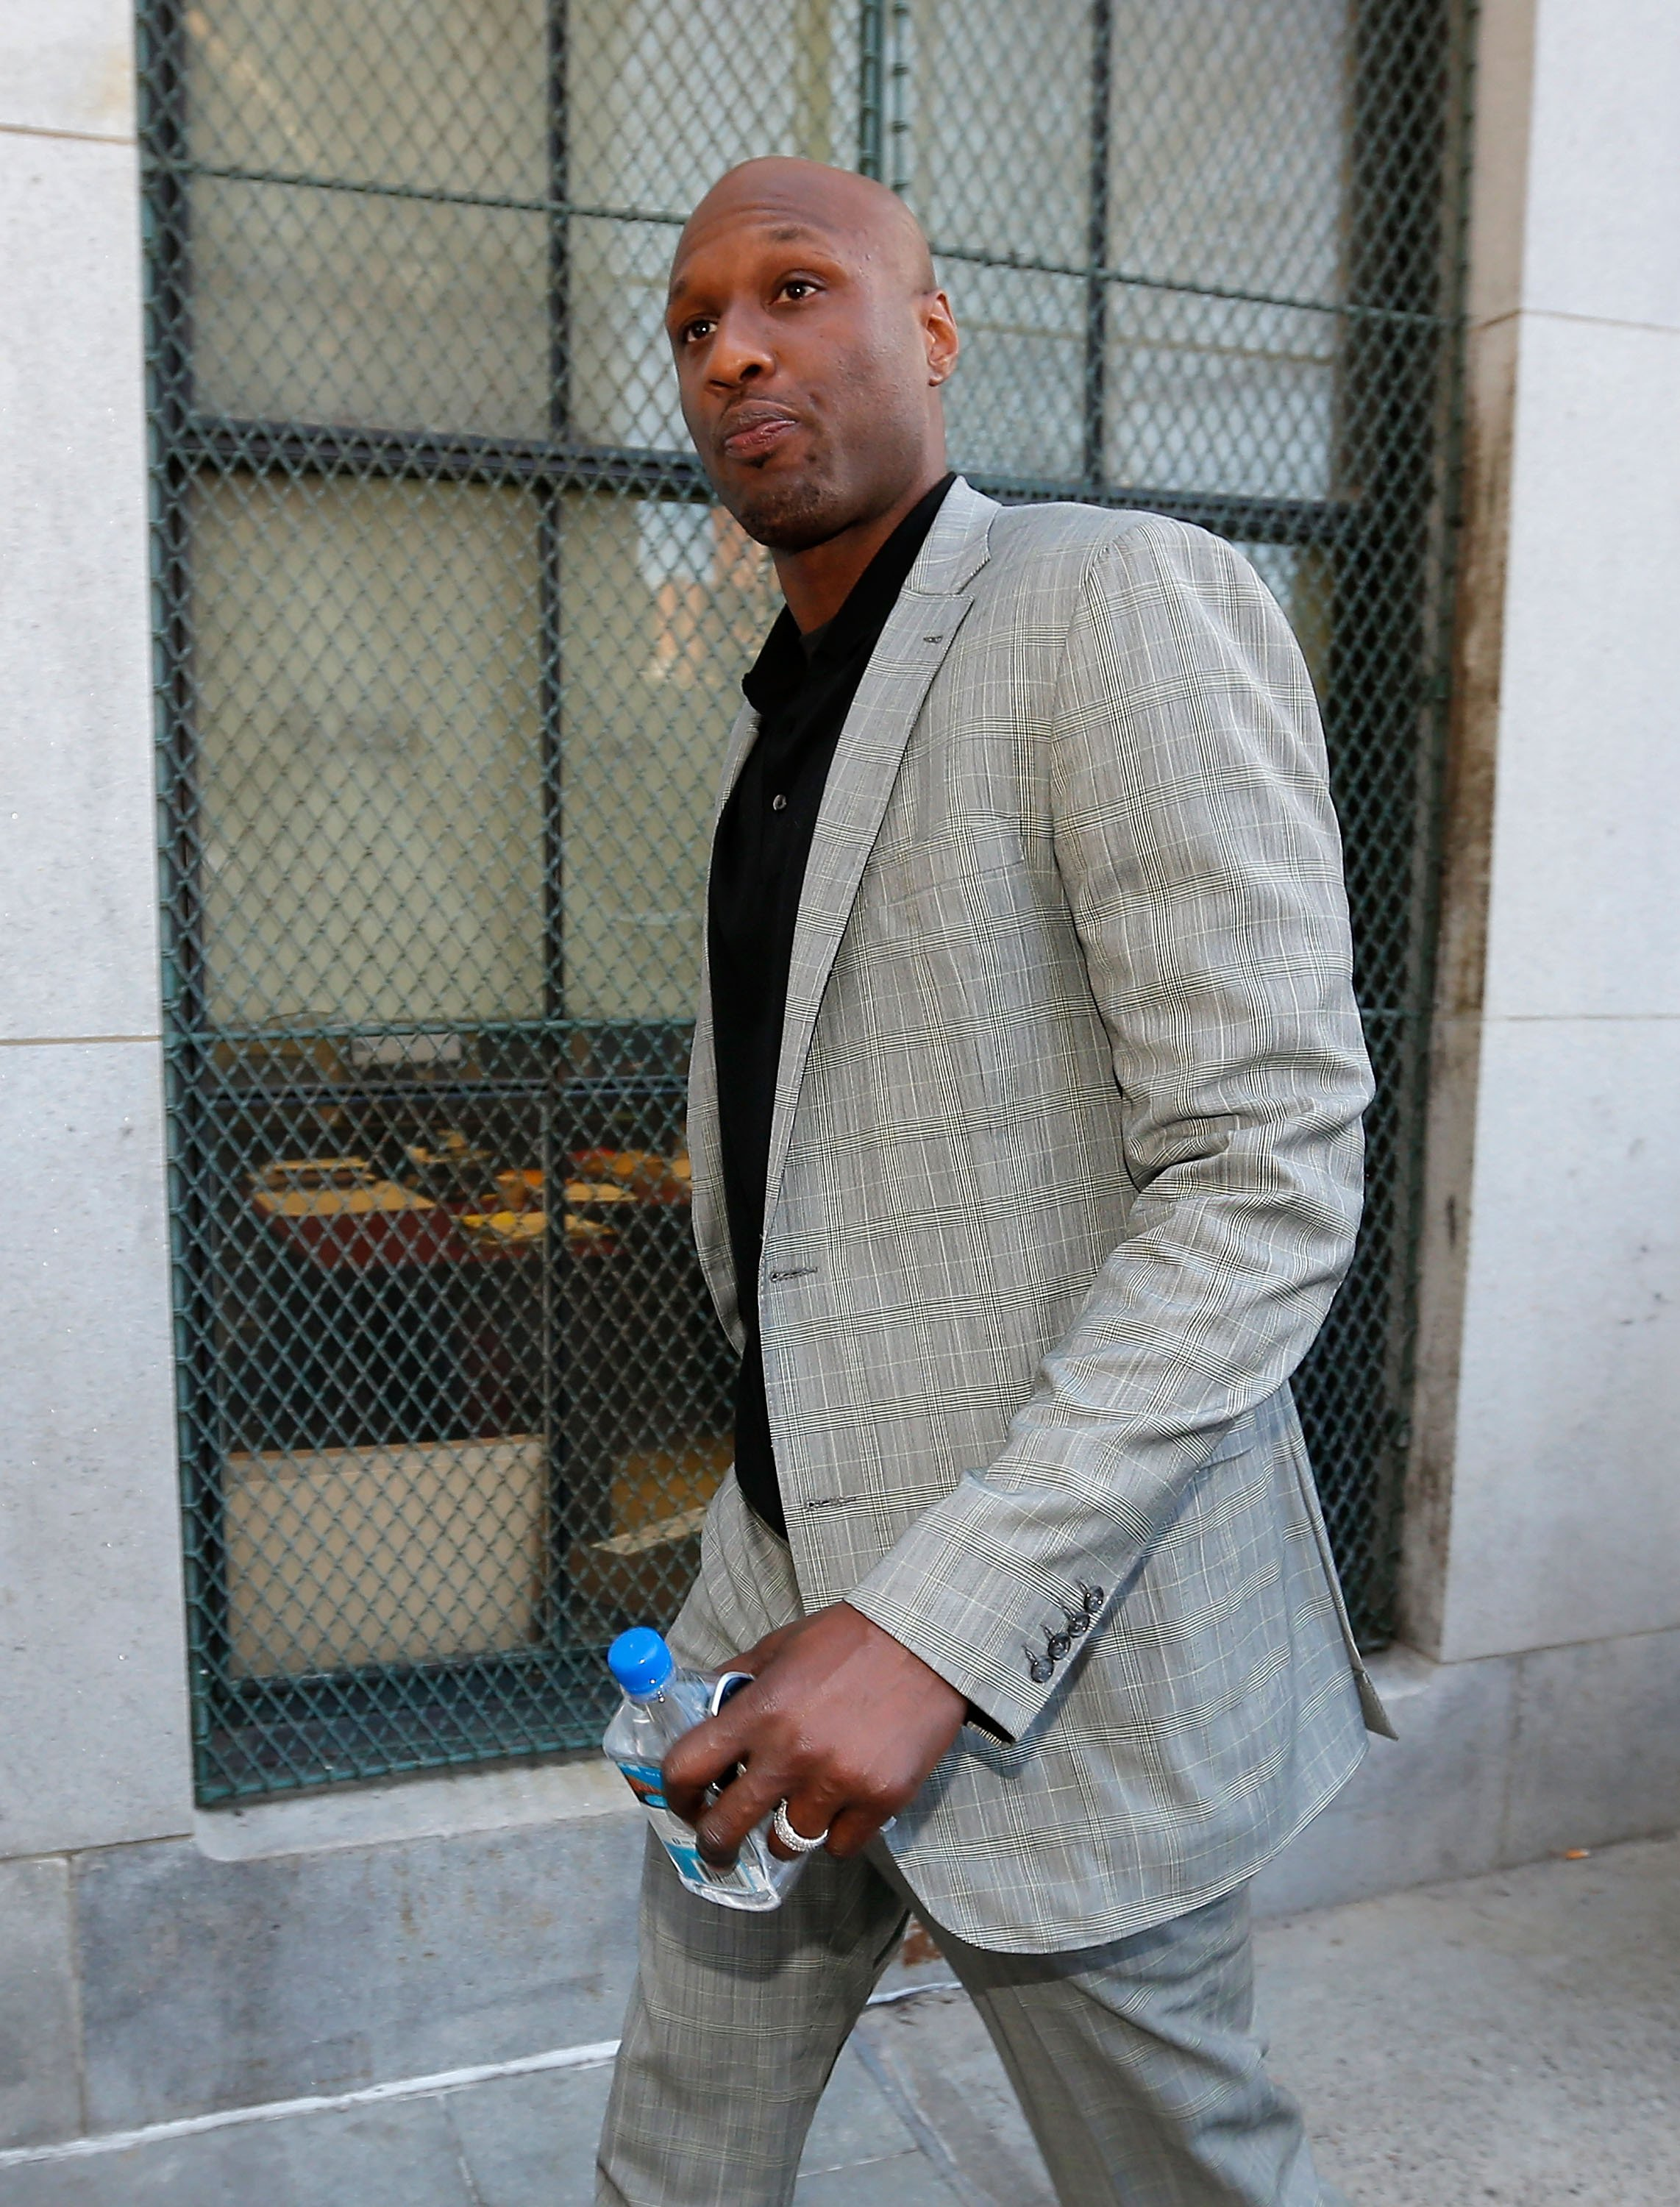 Lamar Odom at a custody hearing with ex-partner Liza Morales on March 5, 2013 in New York City. | Photo: Getty Images